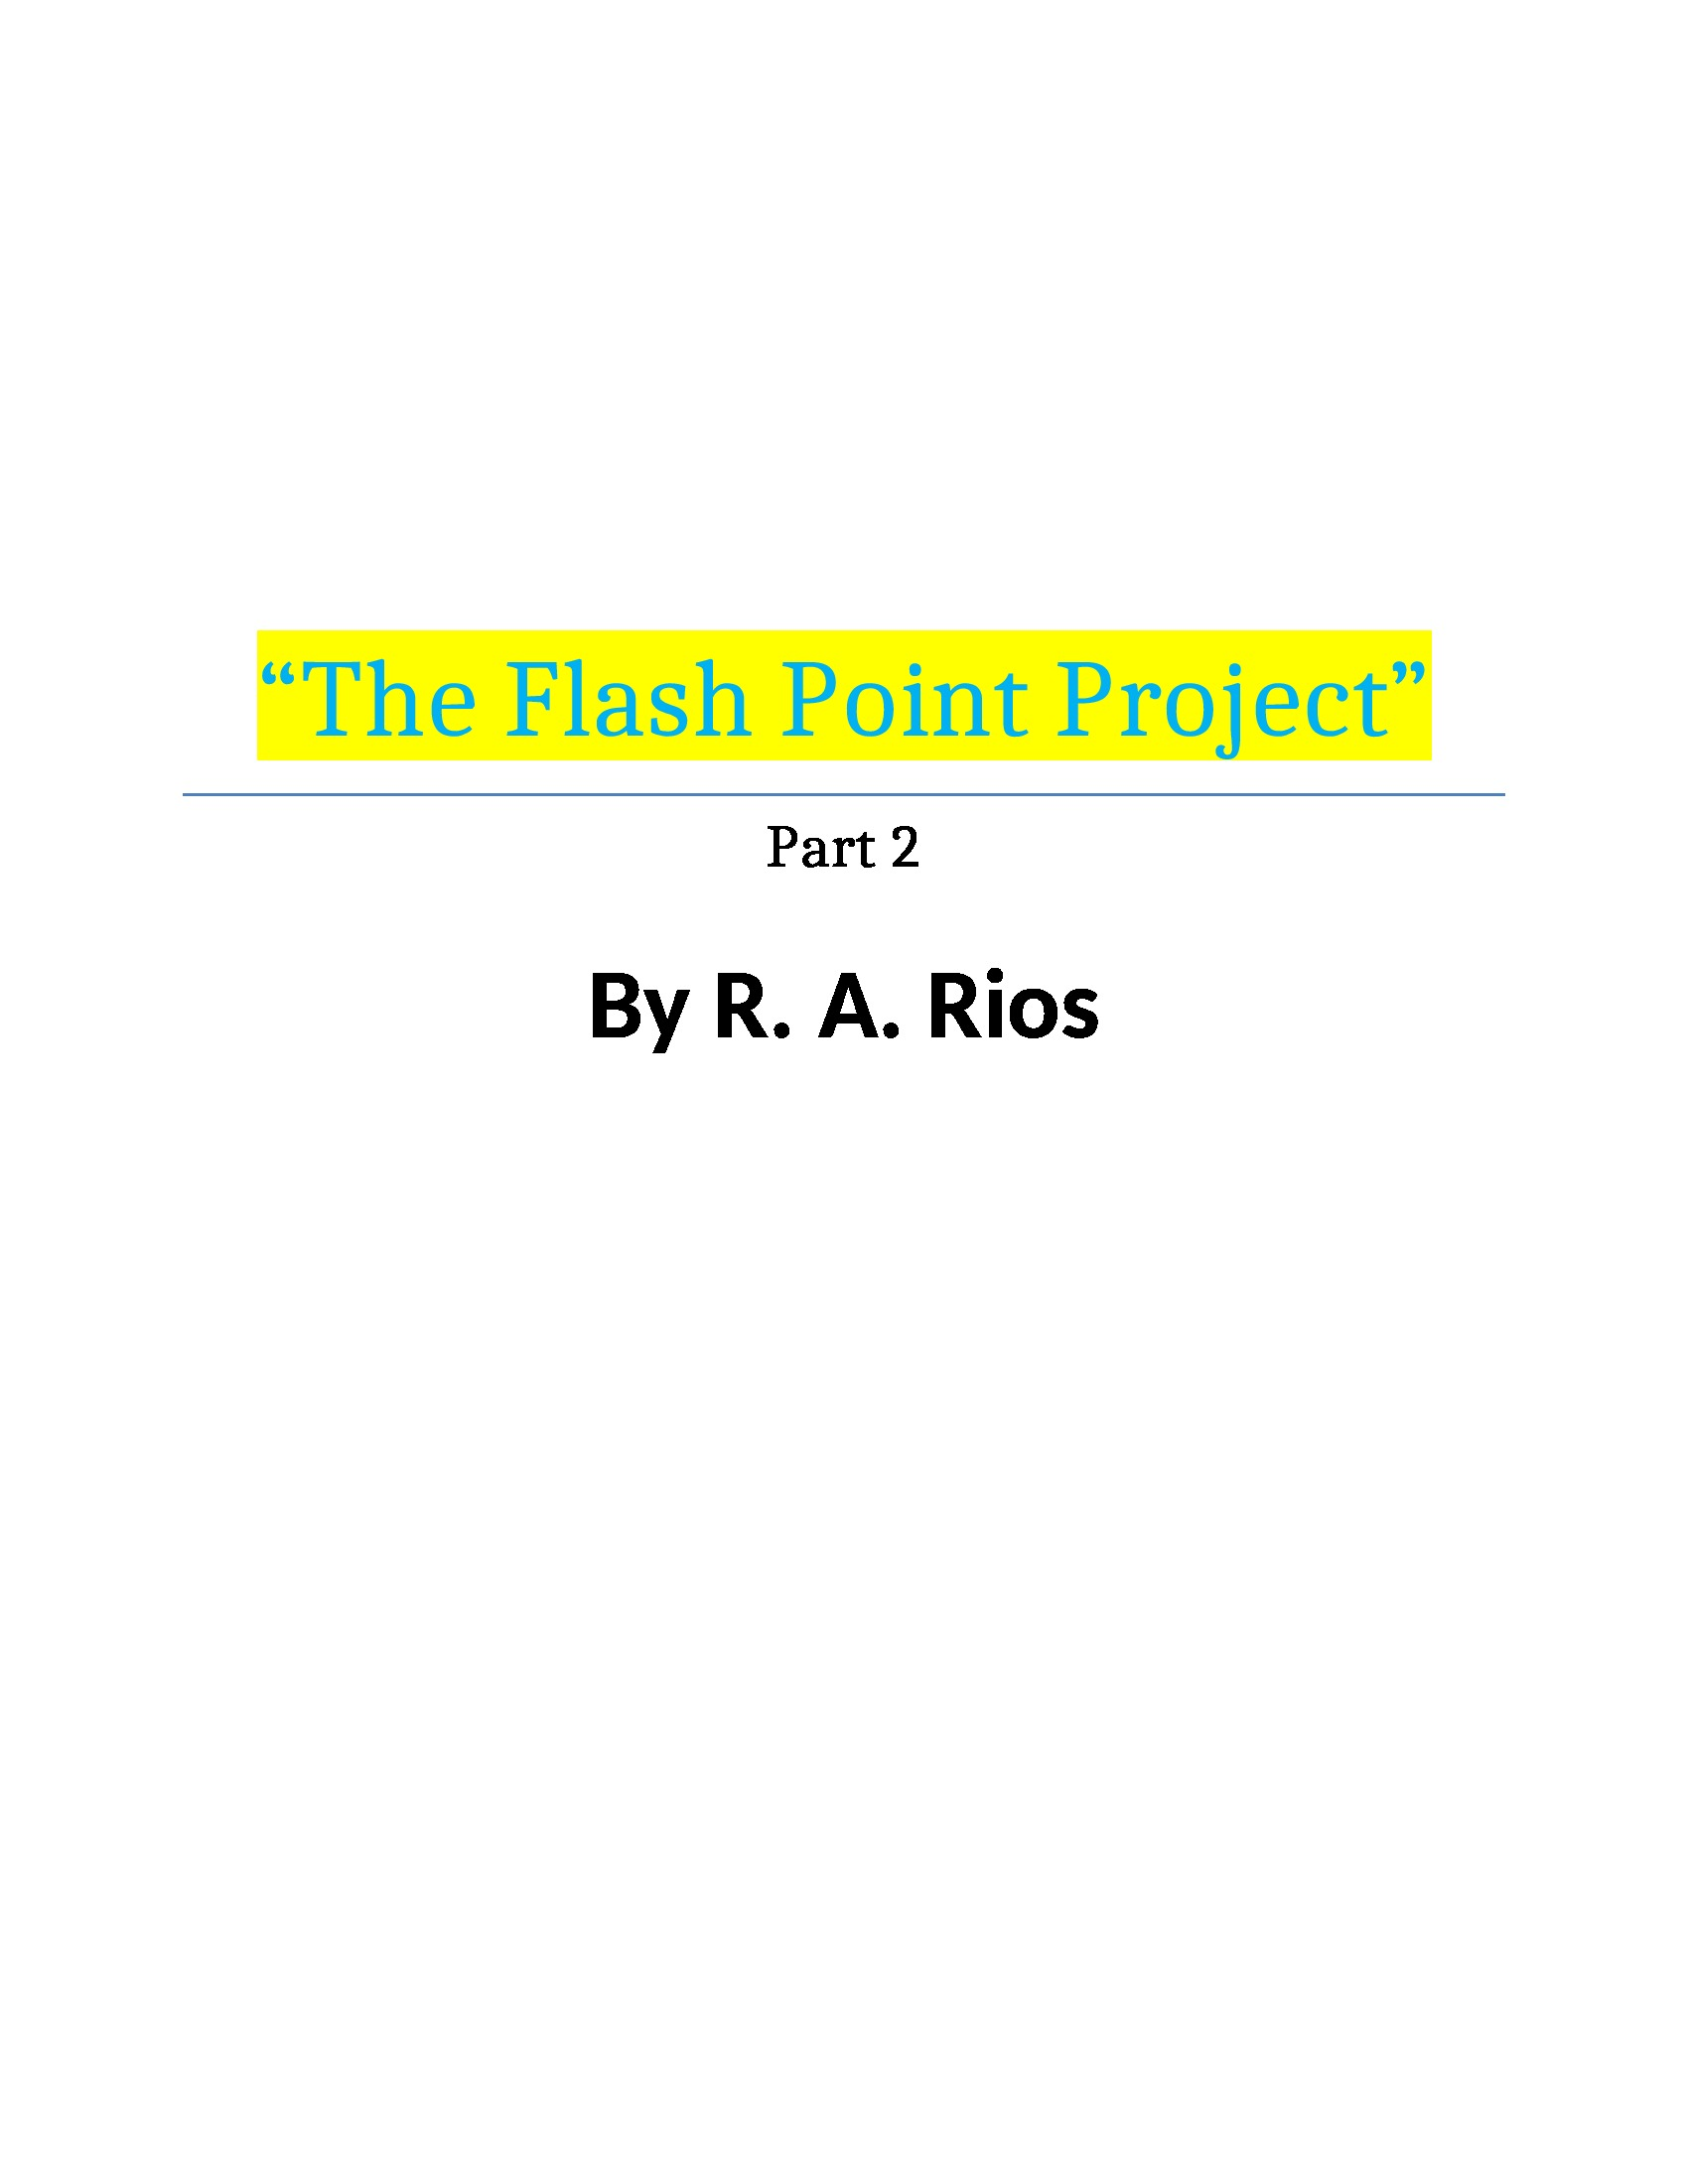 the flash point project part 2